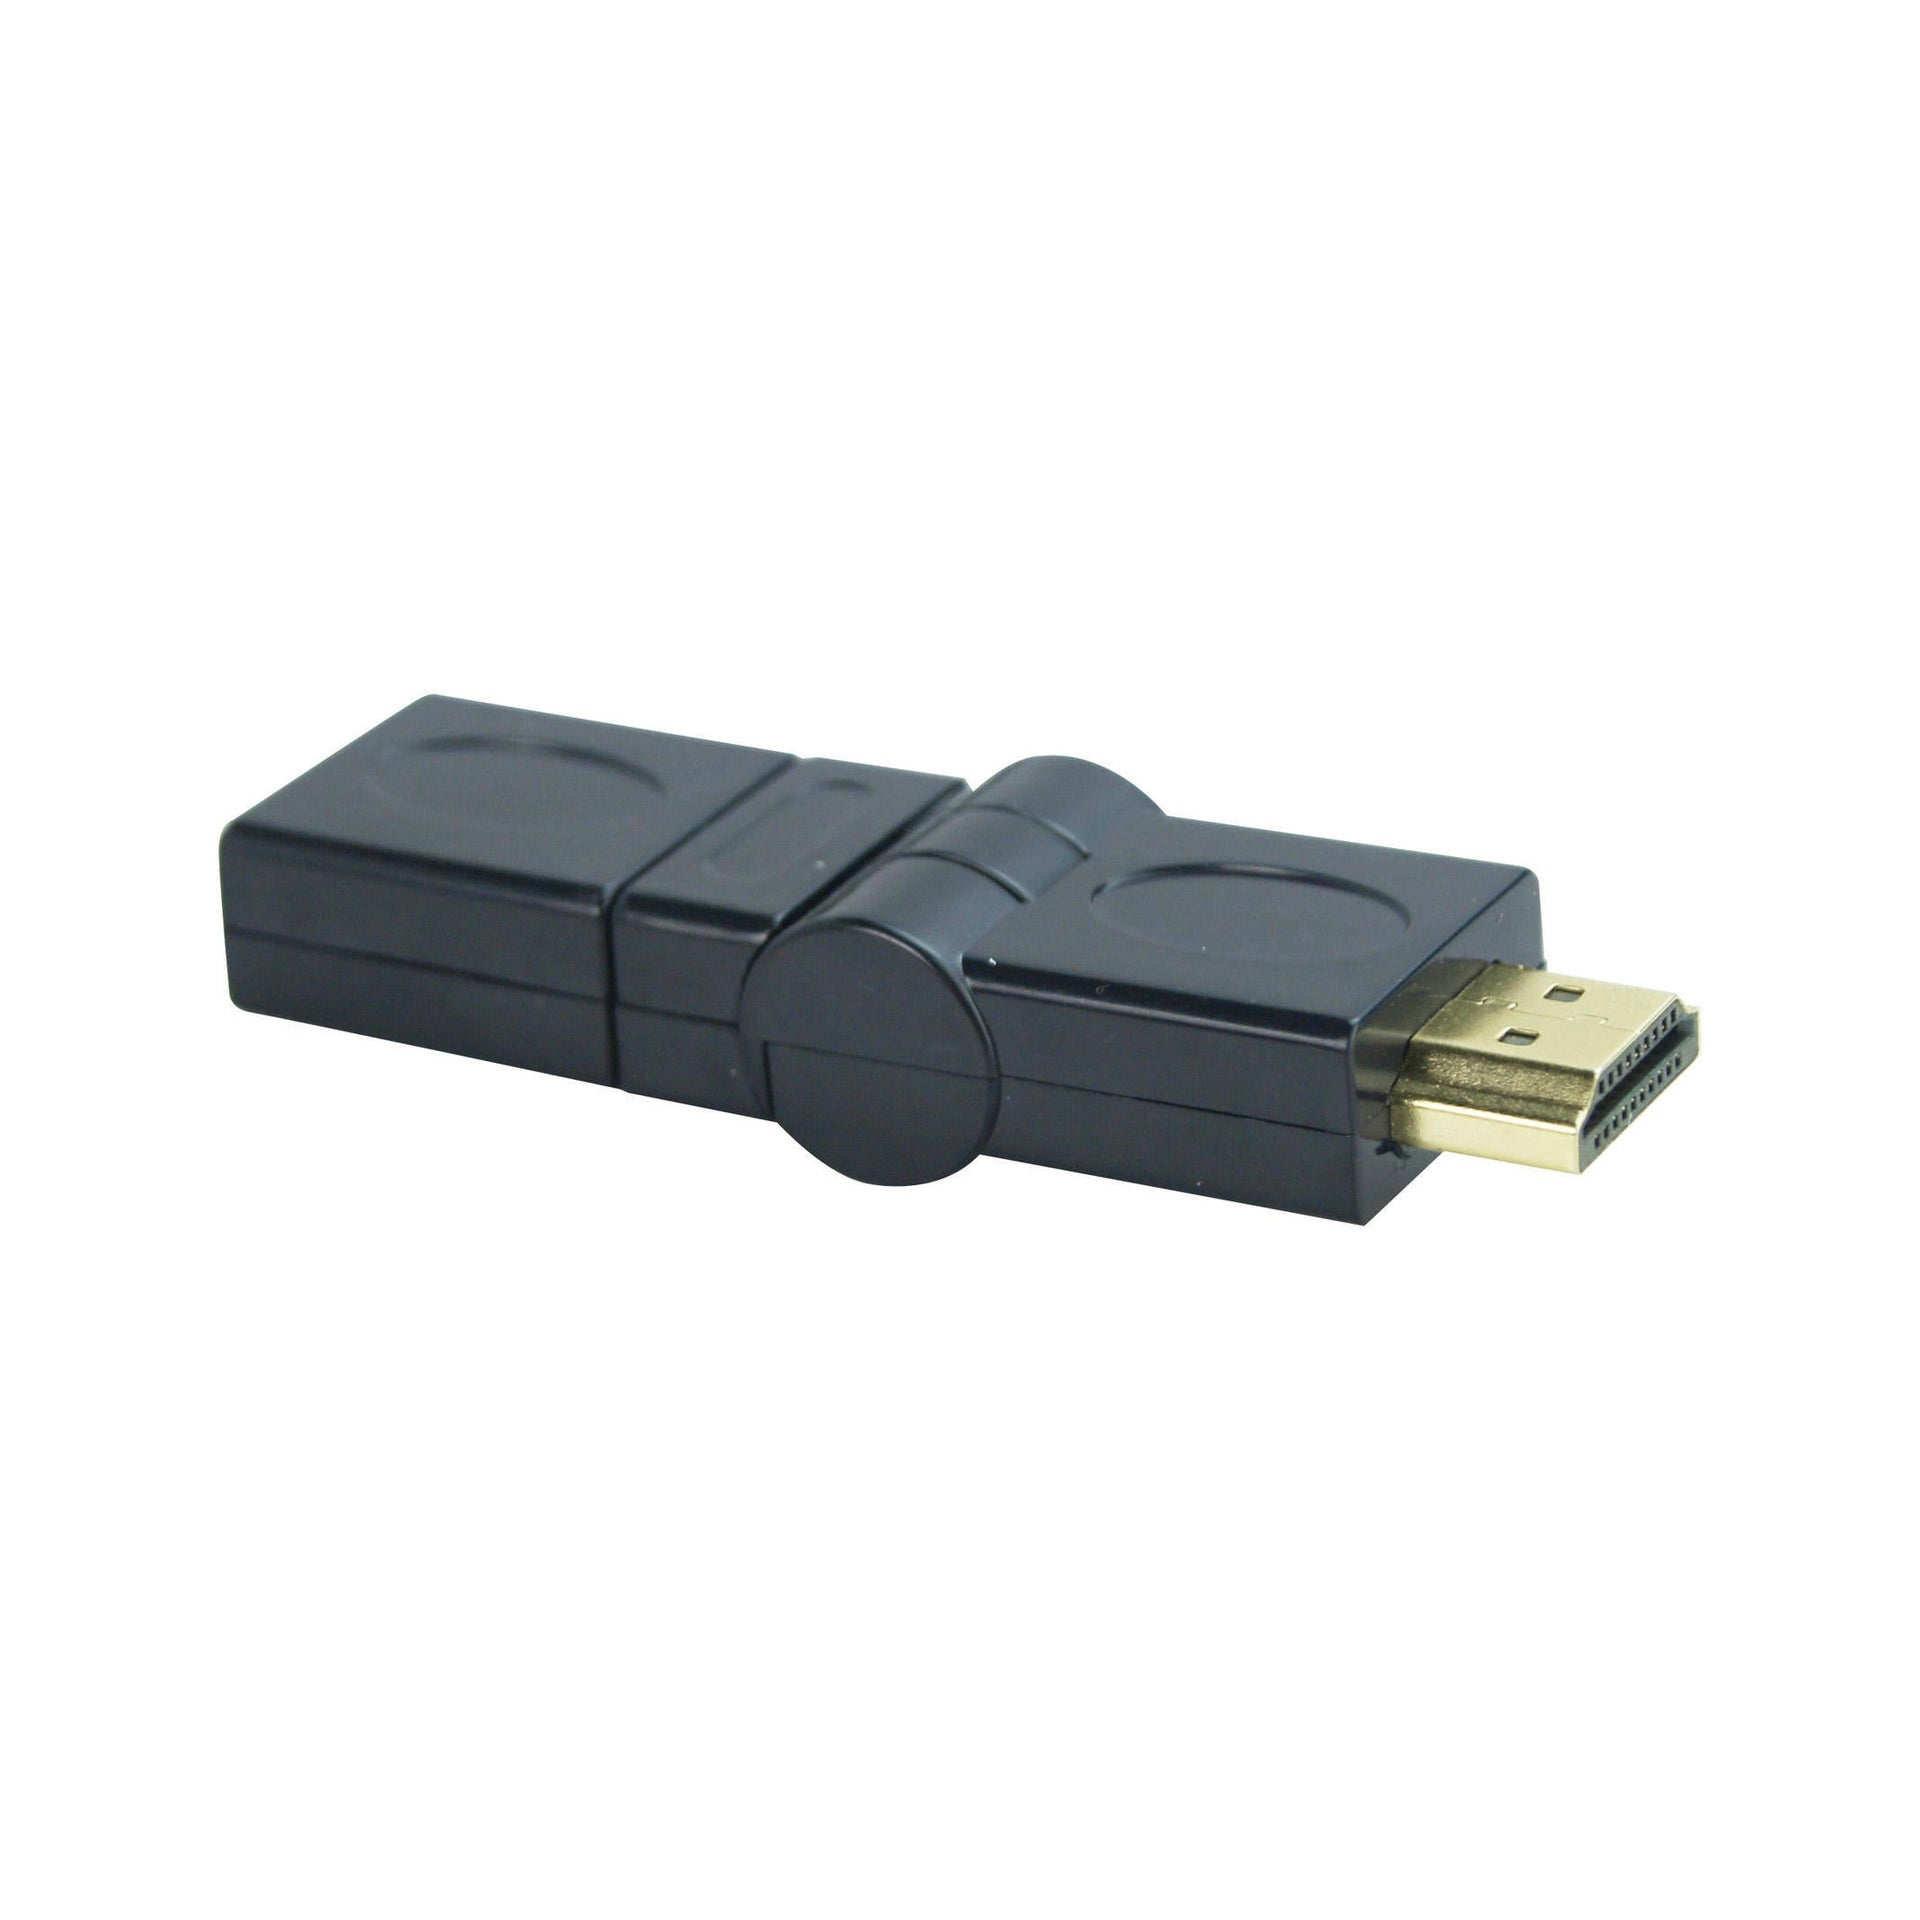 Adattatore HDMI uscita HDMI high speed EVOLOGY high speed - 1